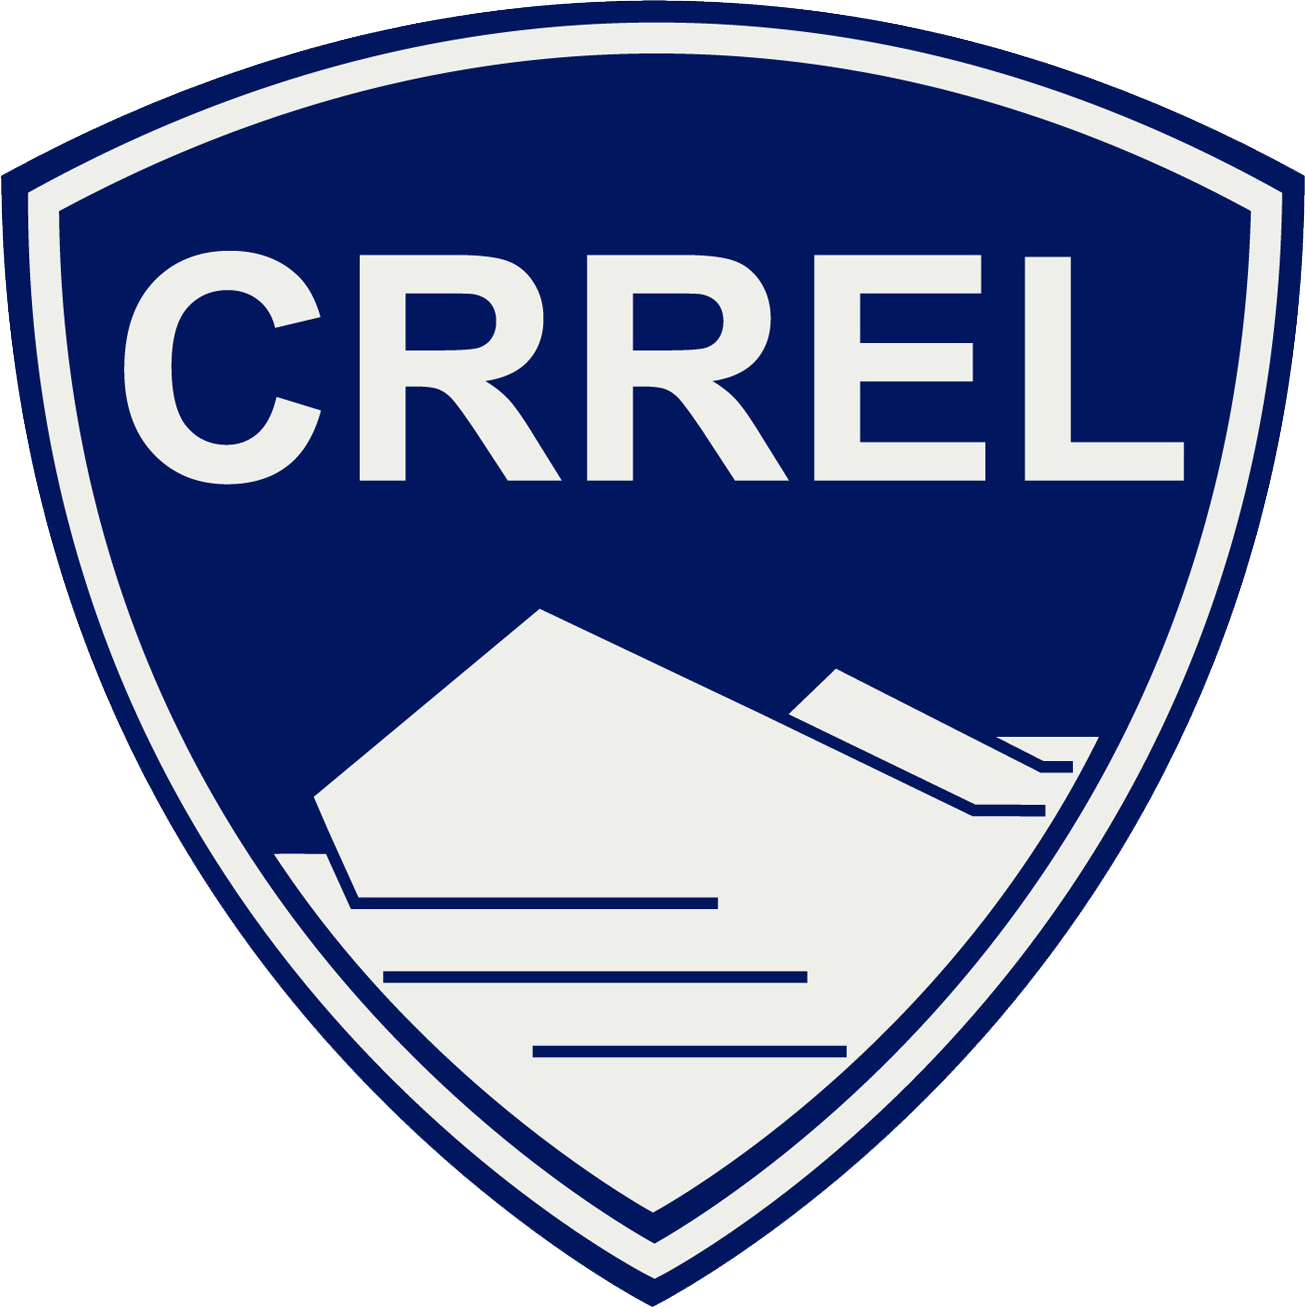 US Army Cold Regions Research and Engineering Laboratory CRREL Logo